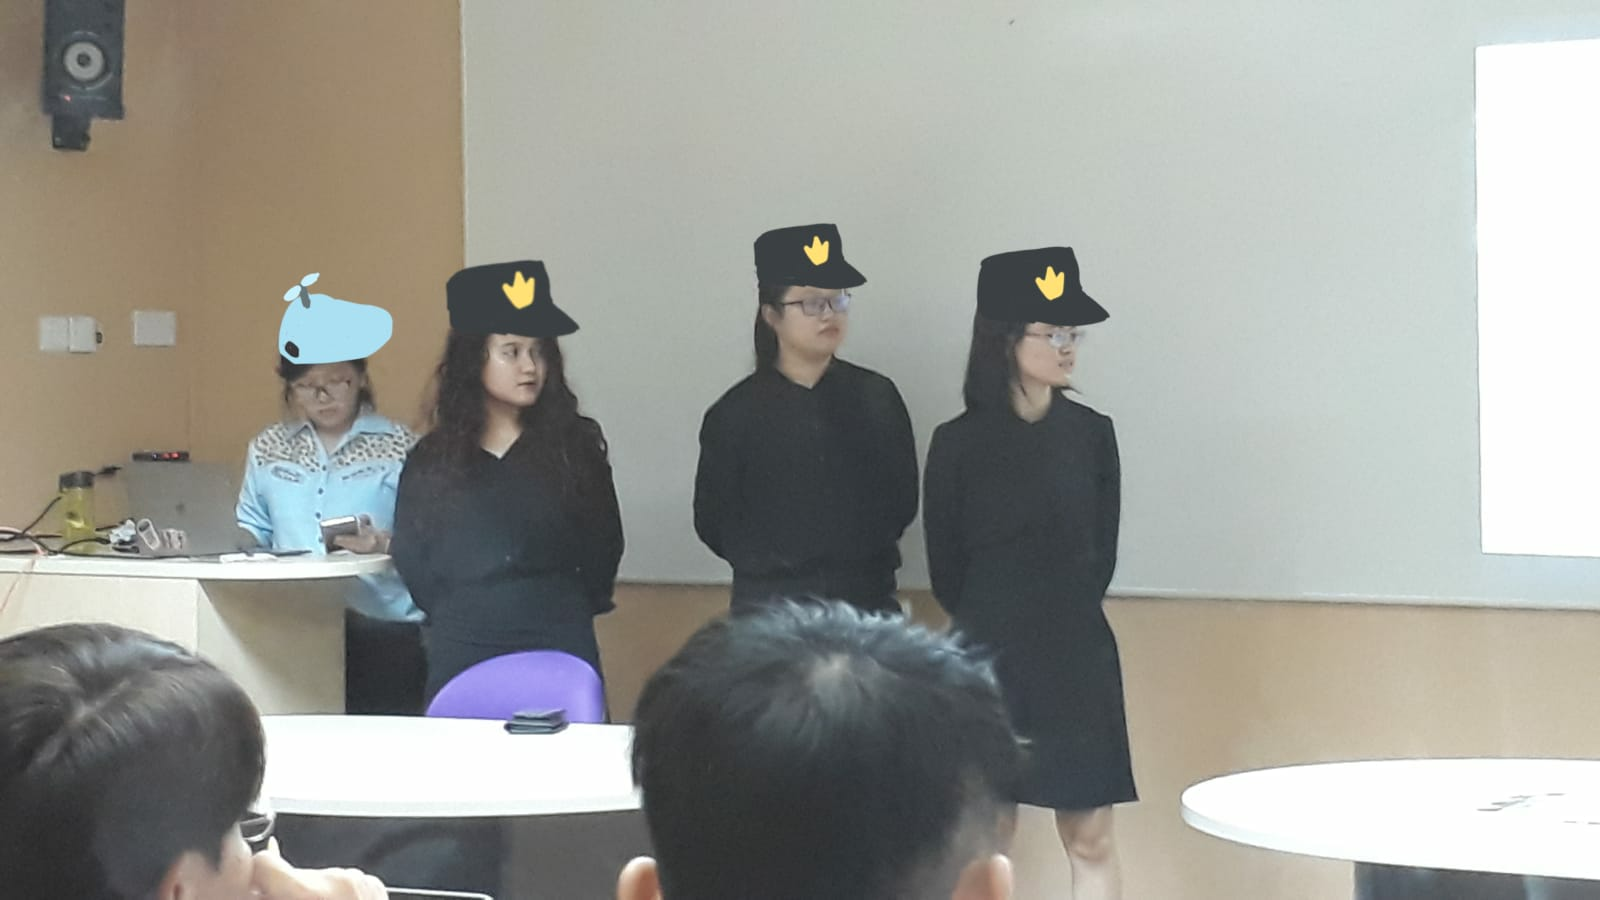 group presentation in class